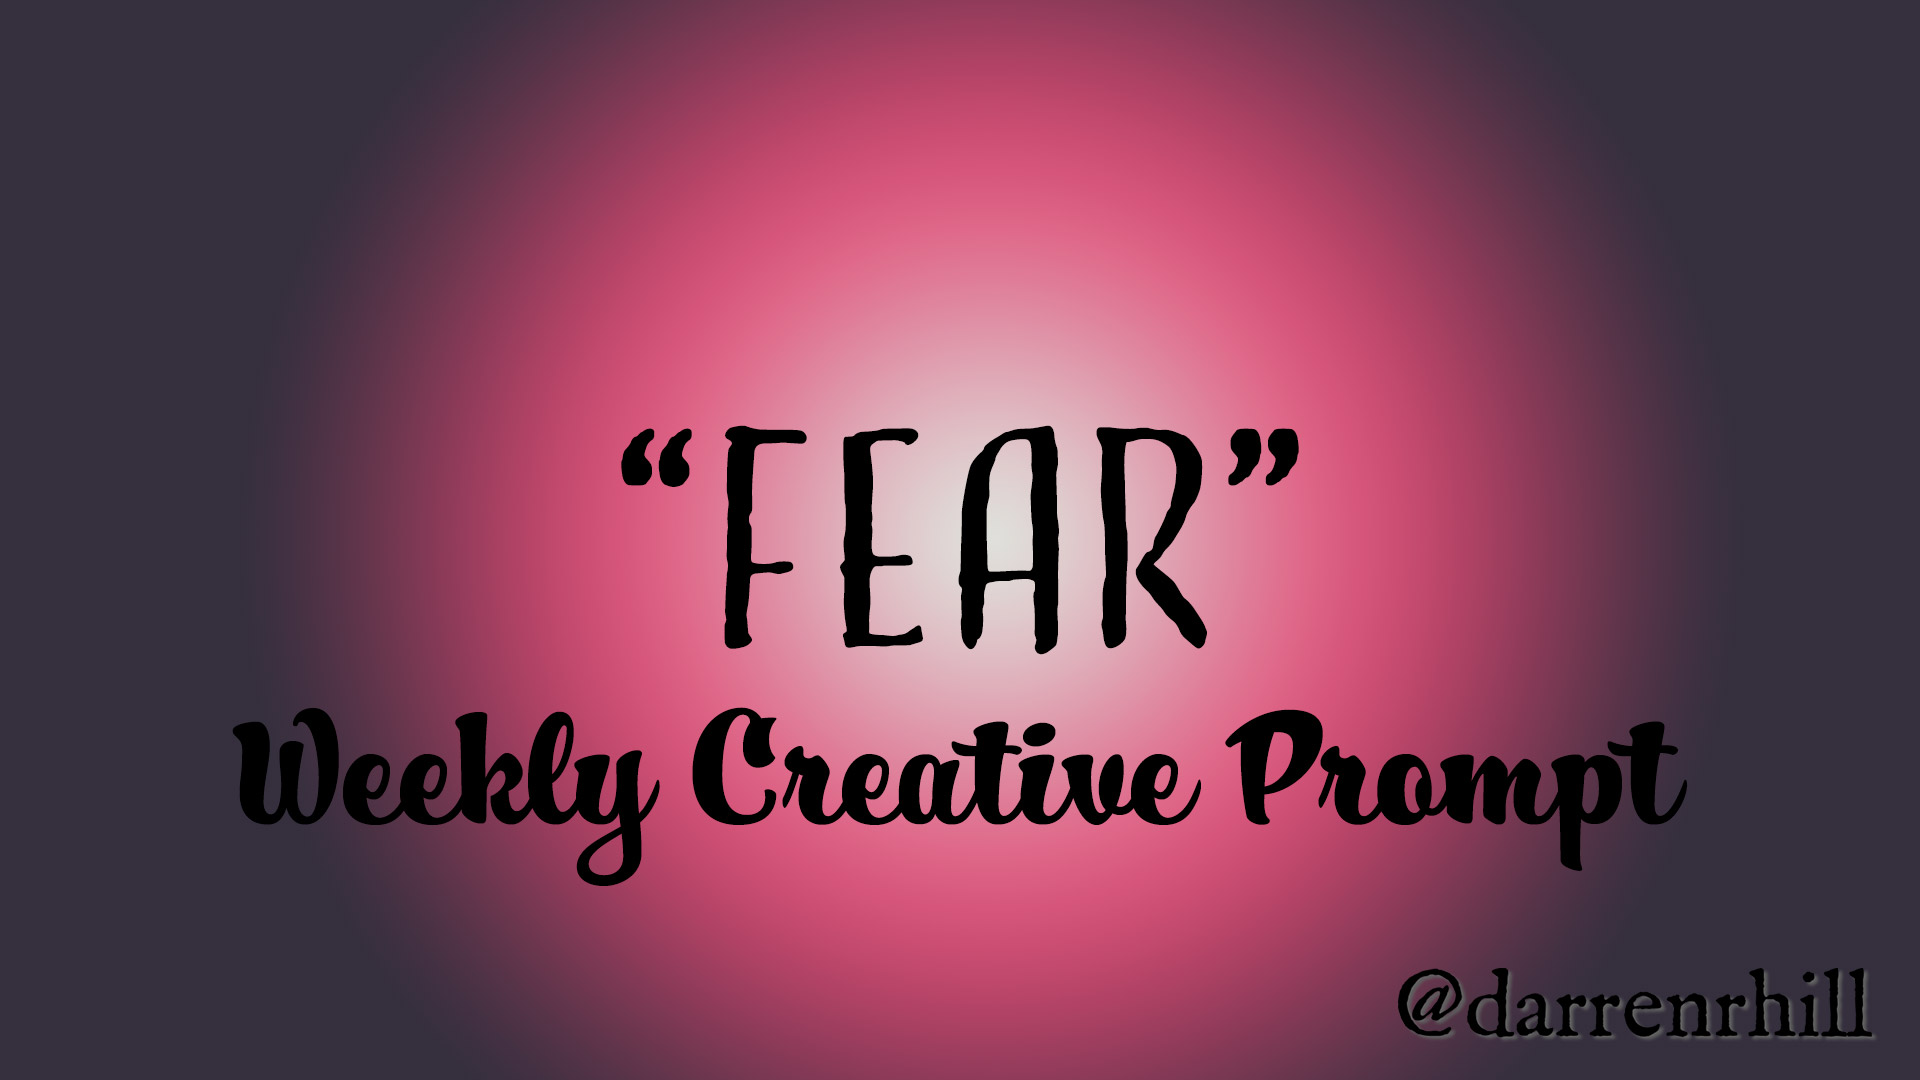 Fear - weekly creative prompt